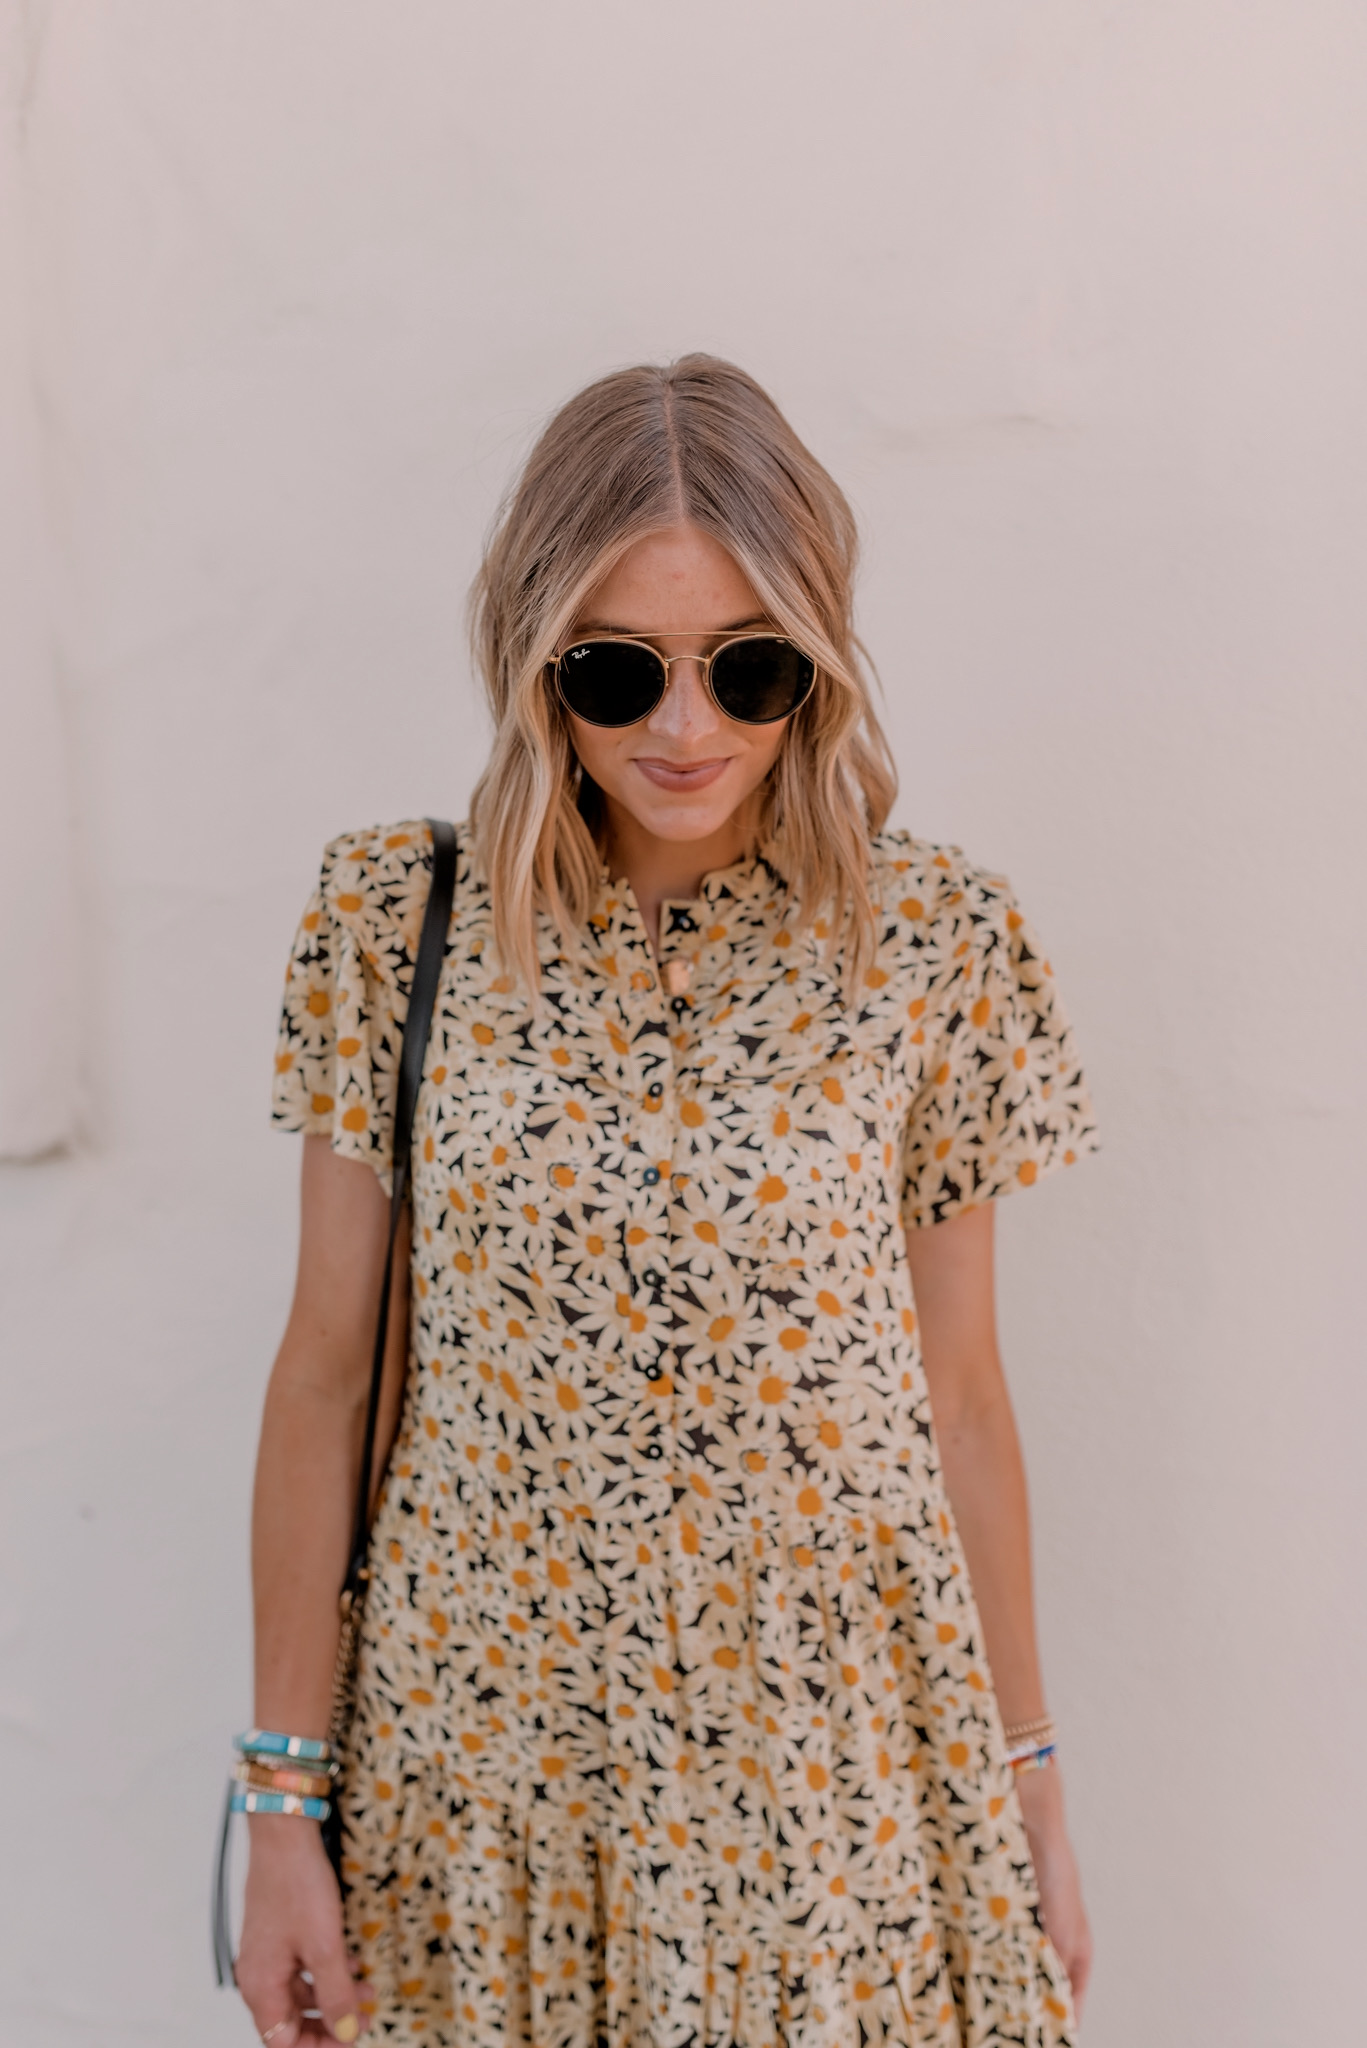 Summer Dresses by popular San Diego fashion blog, Navy Grace: image of a woman standing outside by a white stucco wall and wearing a TopShop Yellow Daisy Grandad Midi Shirt Dress, H&M gold metallic sandals, Ray-Ban sunglasses, and holding a Gucci GG Marmont Matelassé Mini Bag.